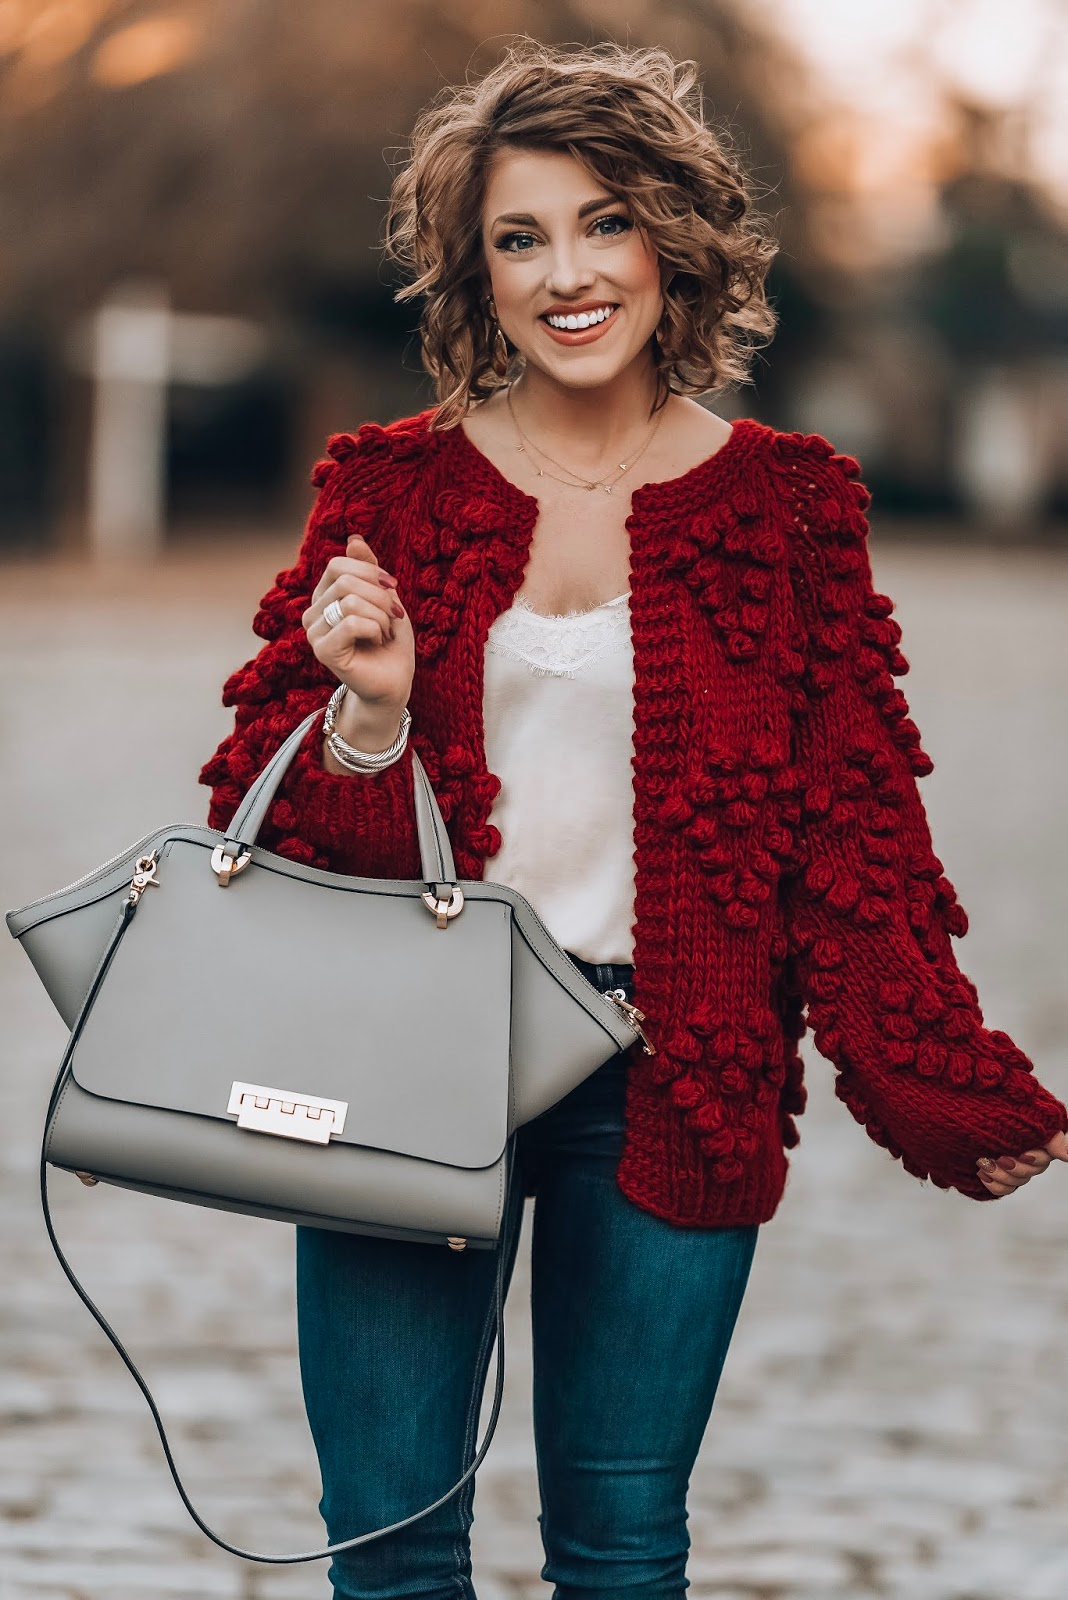 Burgundy Pom Pom Heart Cardigan - Something Delightful Blog